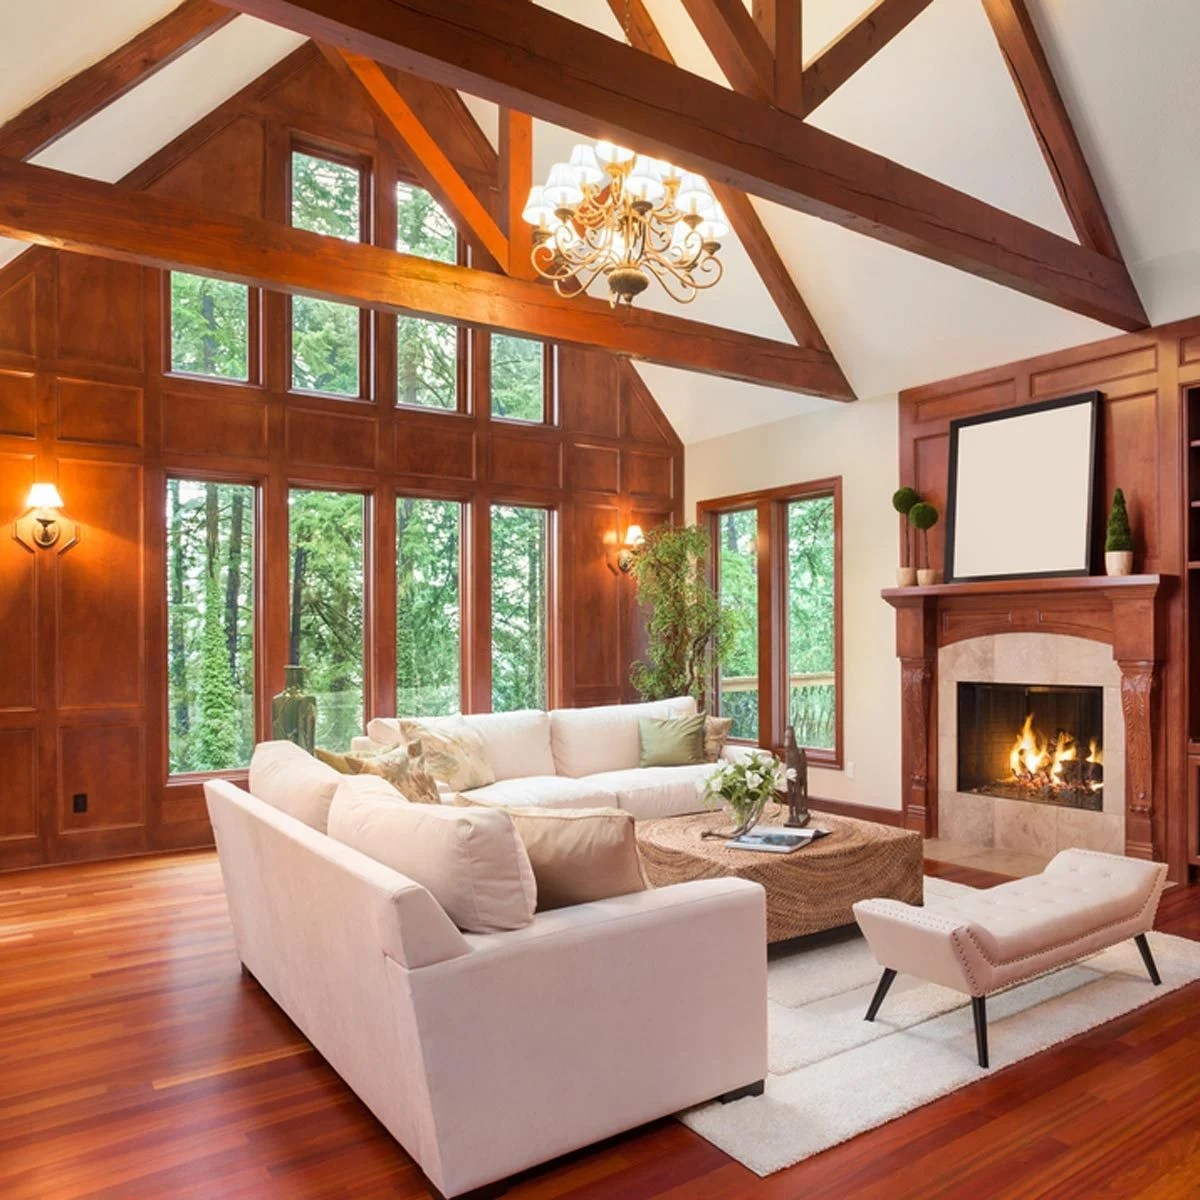 Home Wiring Colors Brown Shades 10 New Trends In Wood Trim For 2018 The Family Handyman